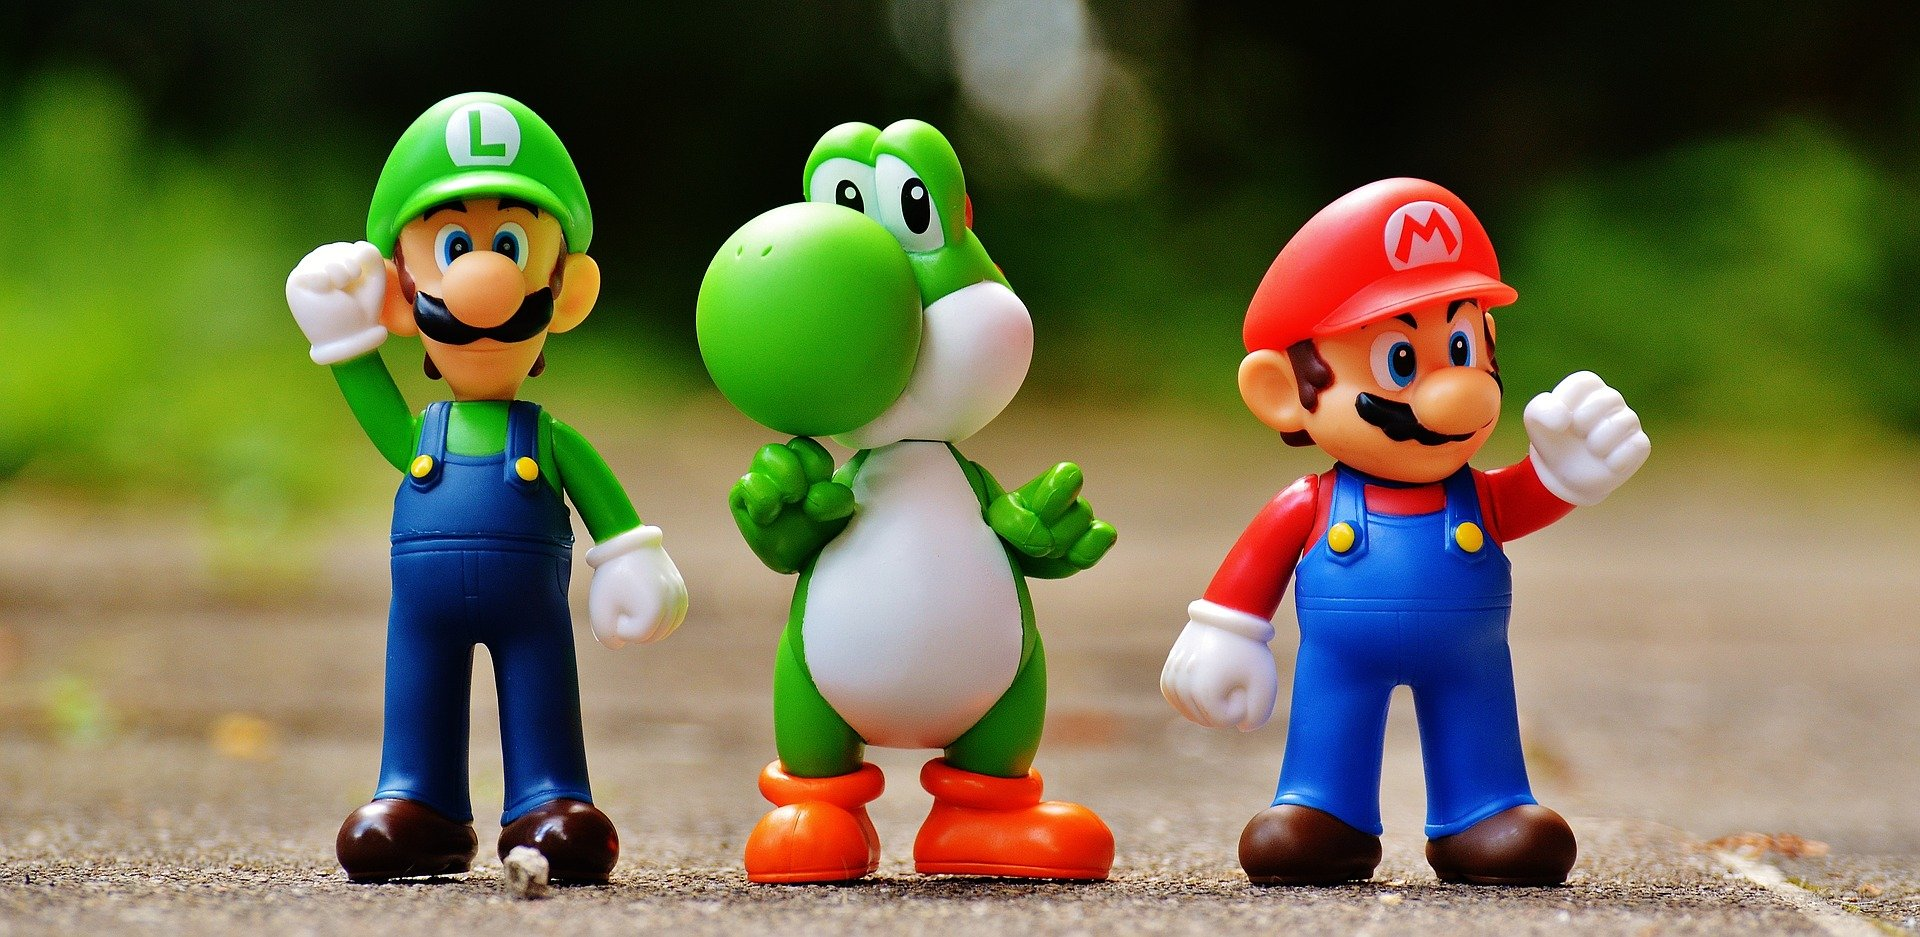 5 Reasons Why Mario Is So Popular